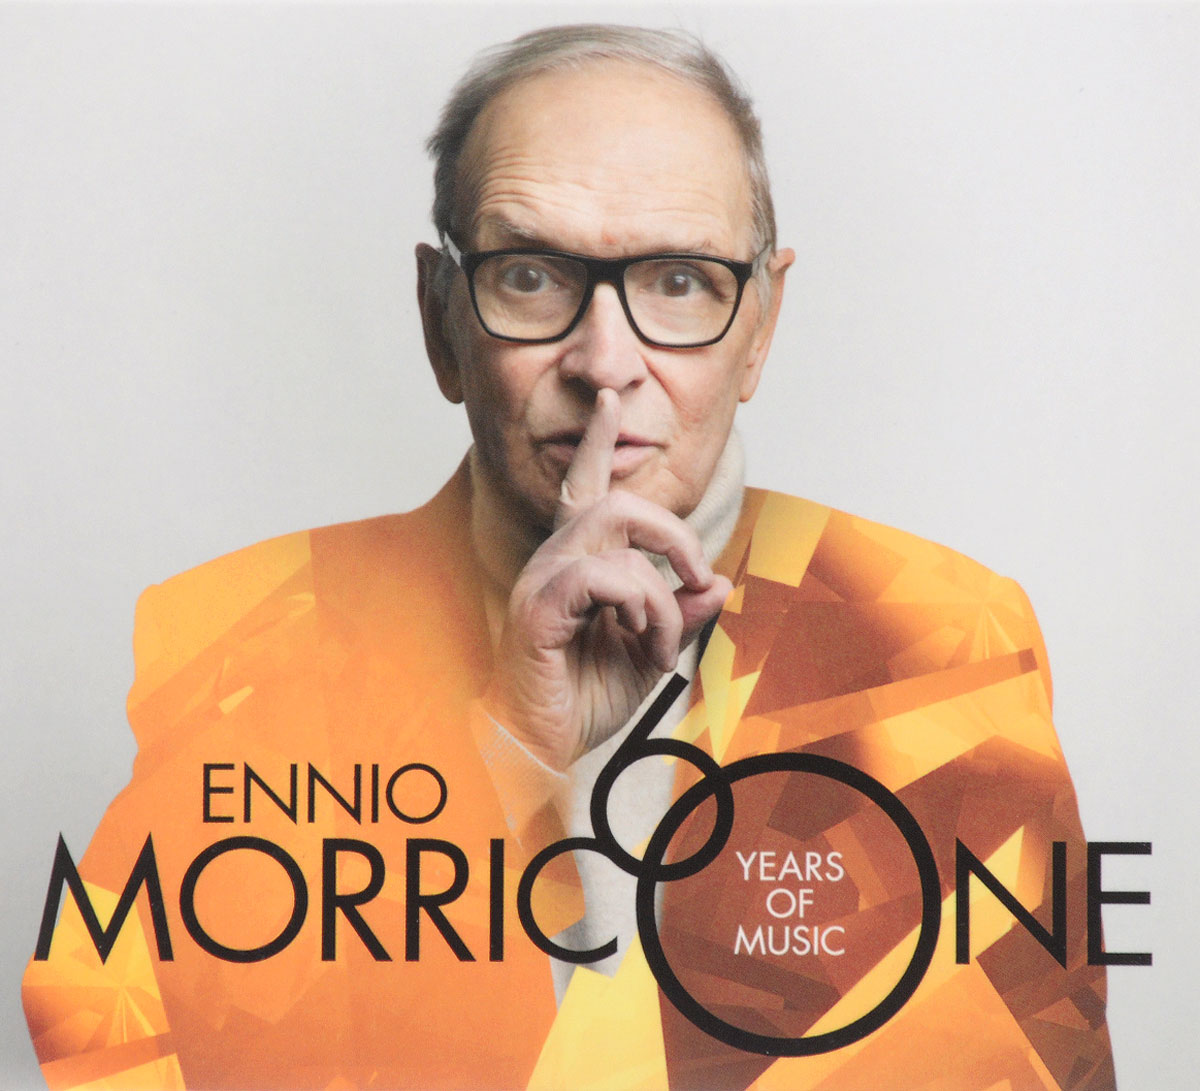 Эннио Морриконе Ennio Morricone. Morricone 60 Years Of Music эннио морриконе ennio morricone the mission original soundtrack lp